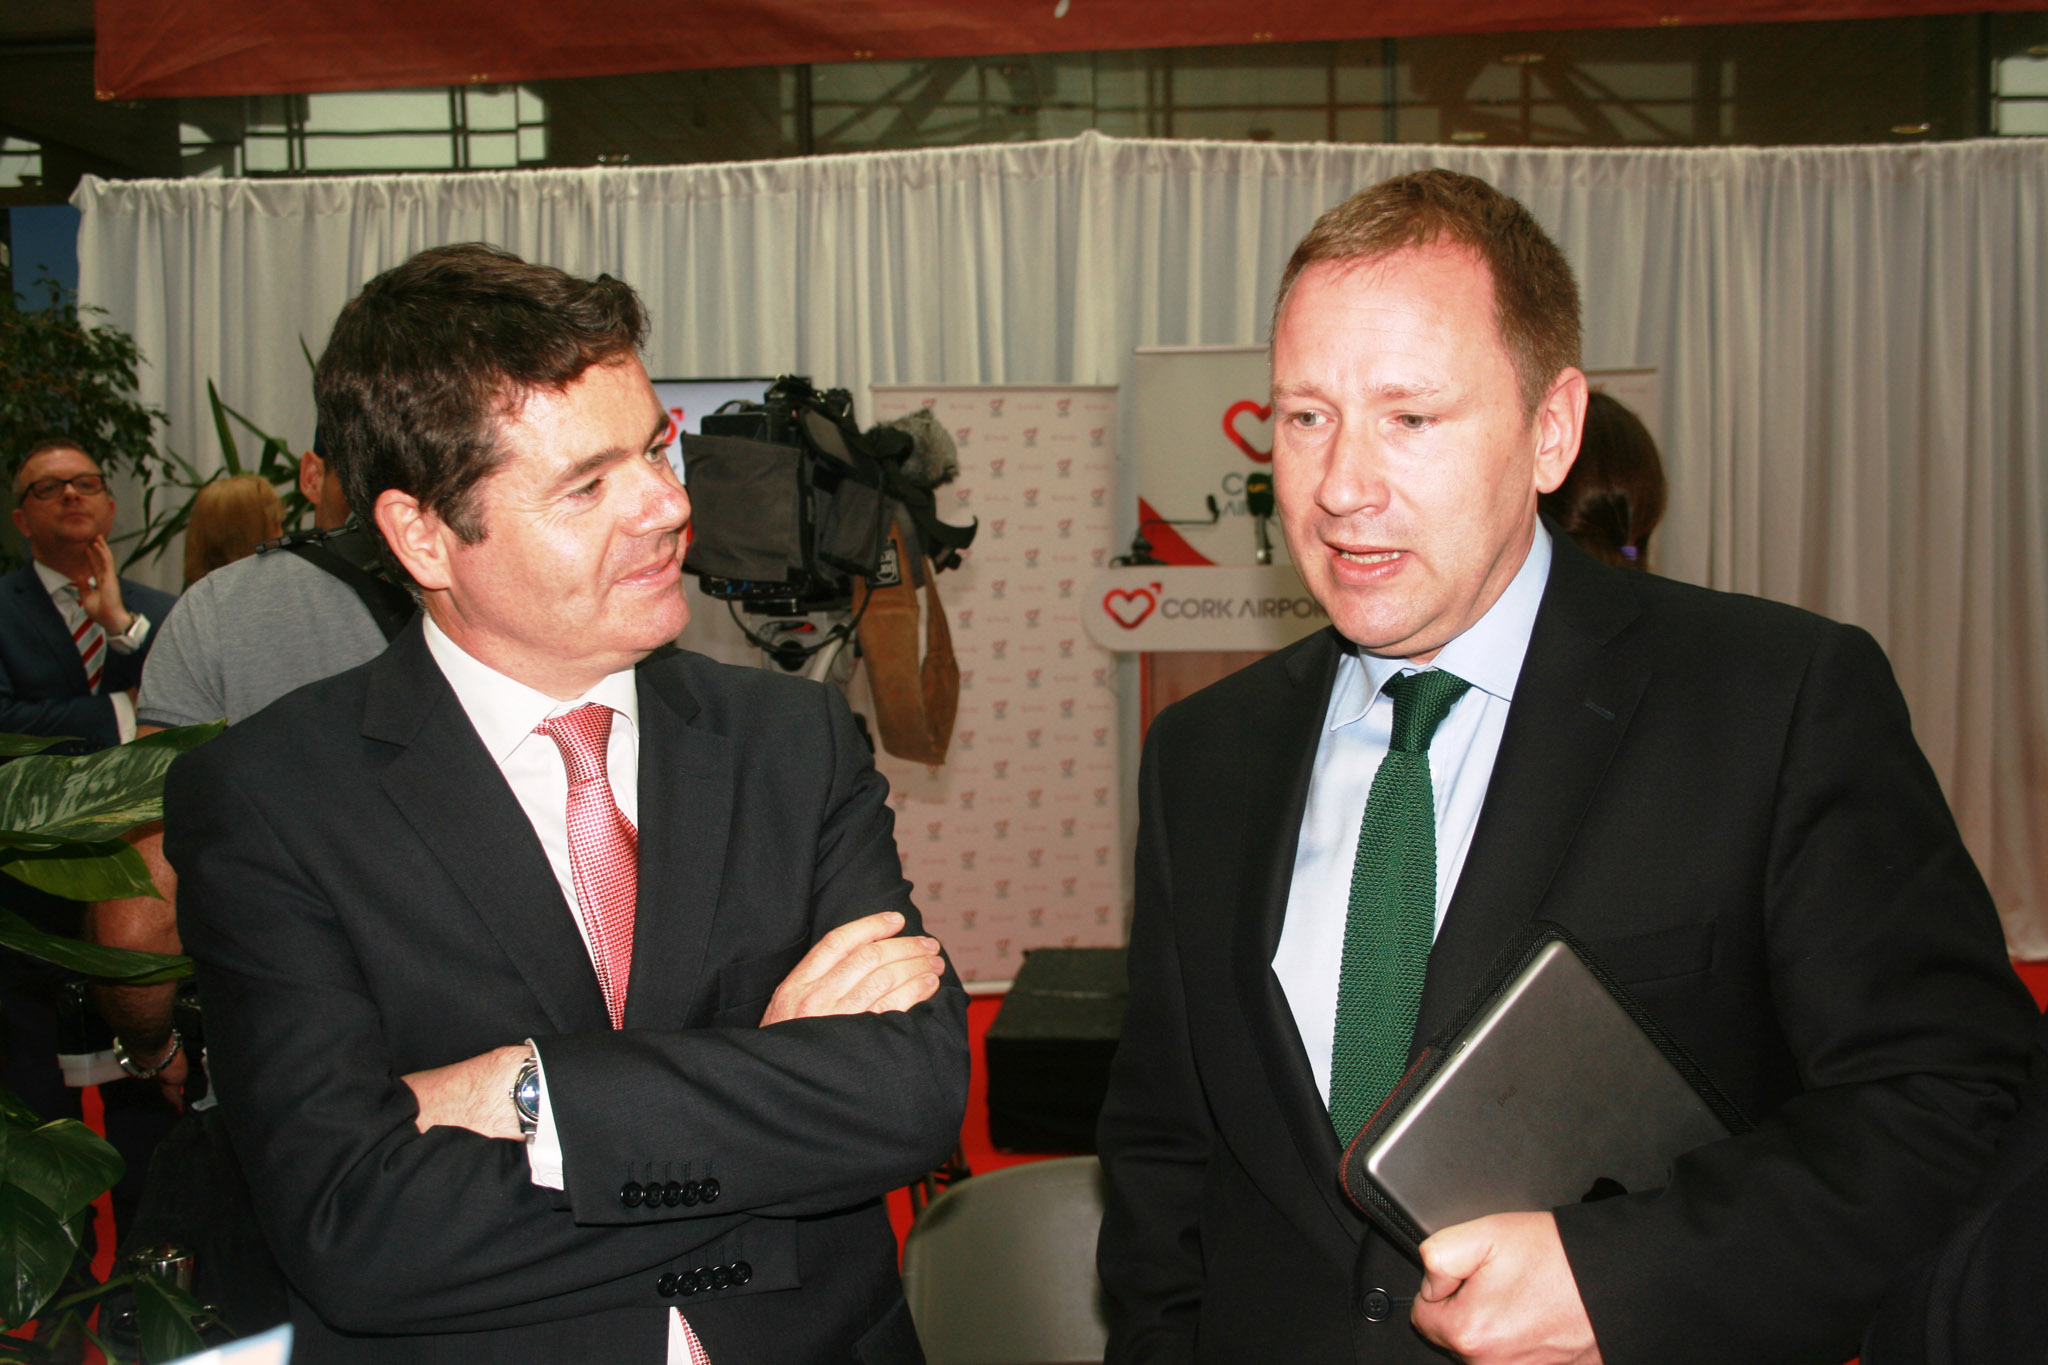 Minister Donohoe & Aer Lingus Chief Executive Stephen Kavanagh (IMG4228 JL)